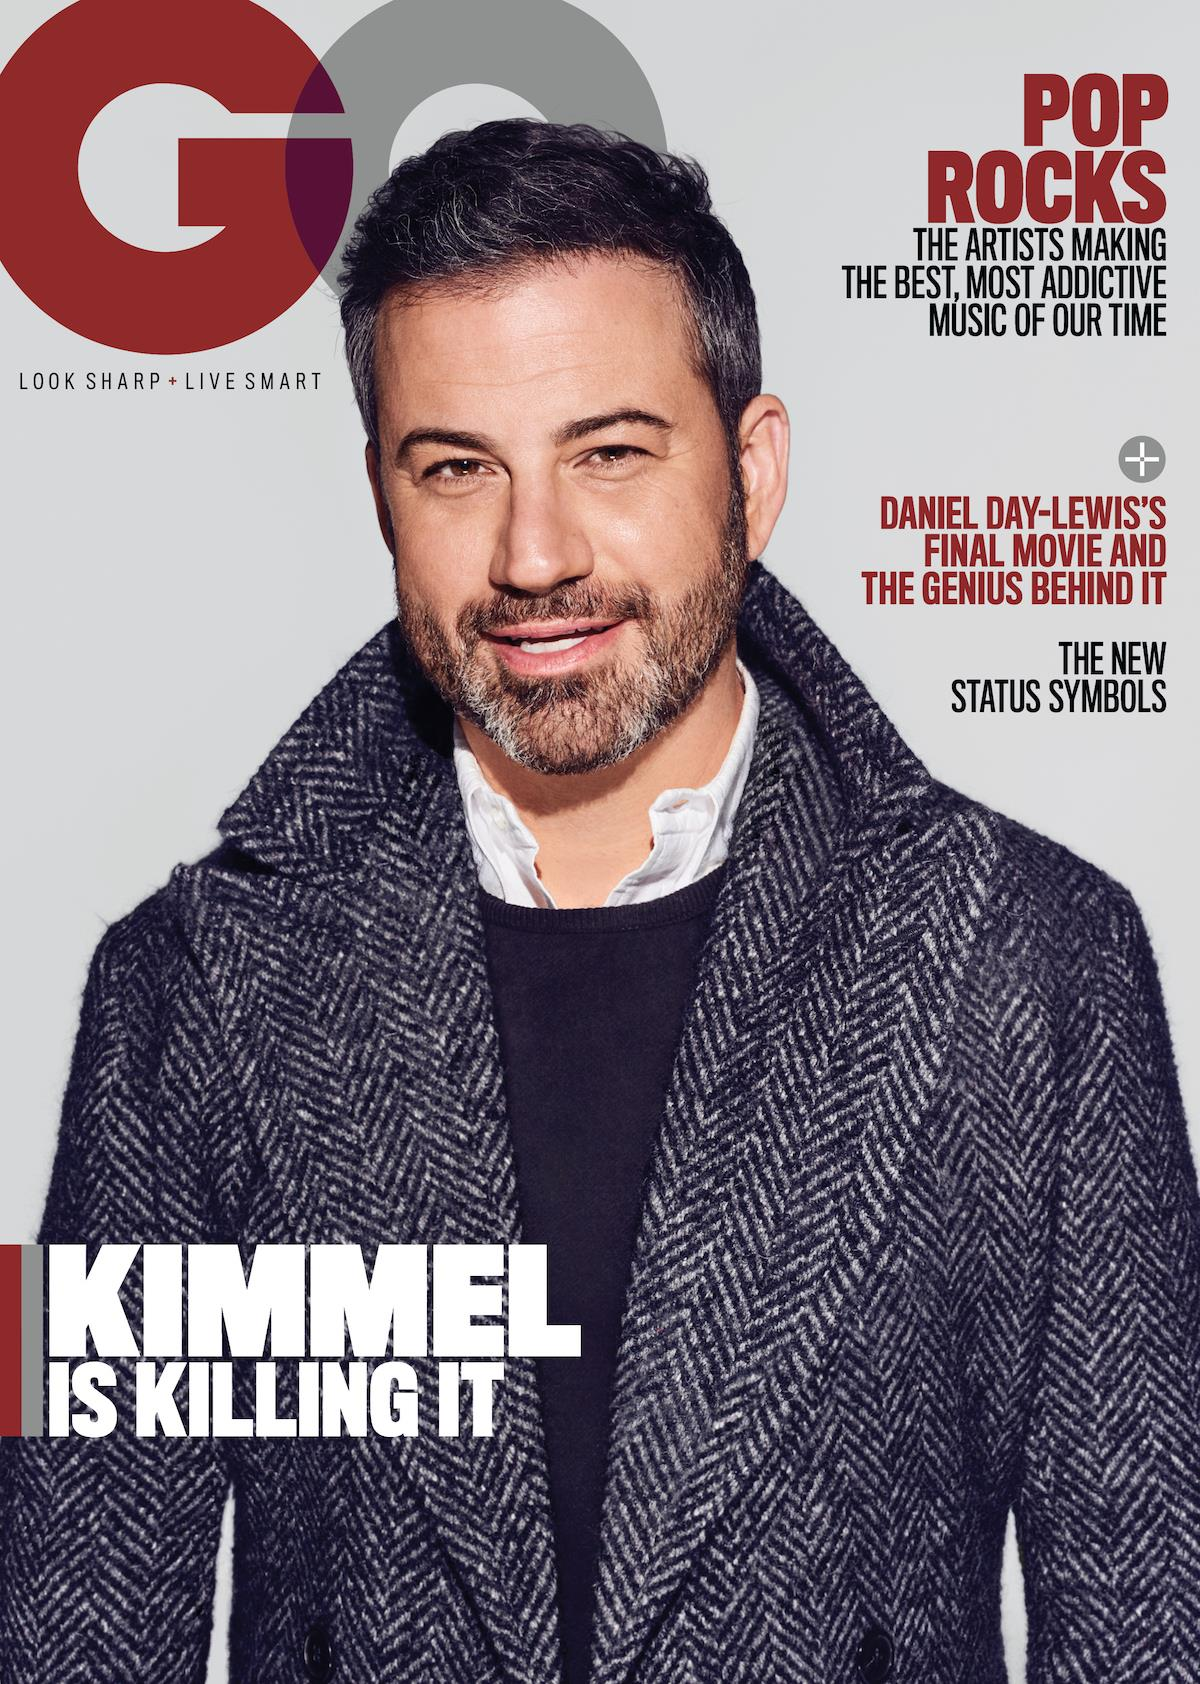 e31f59f295190 The Mr. Magazine™ interview  How GQ takes print seriously and has ...